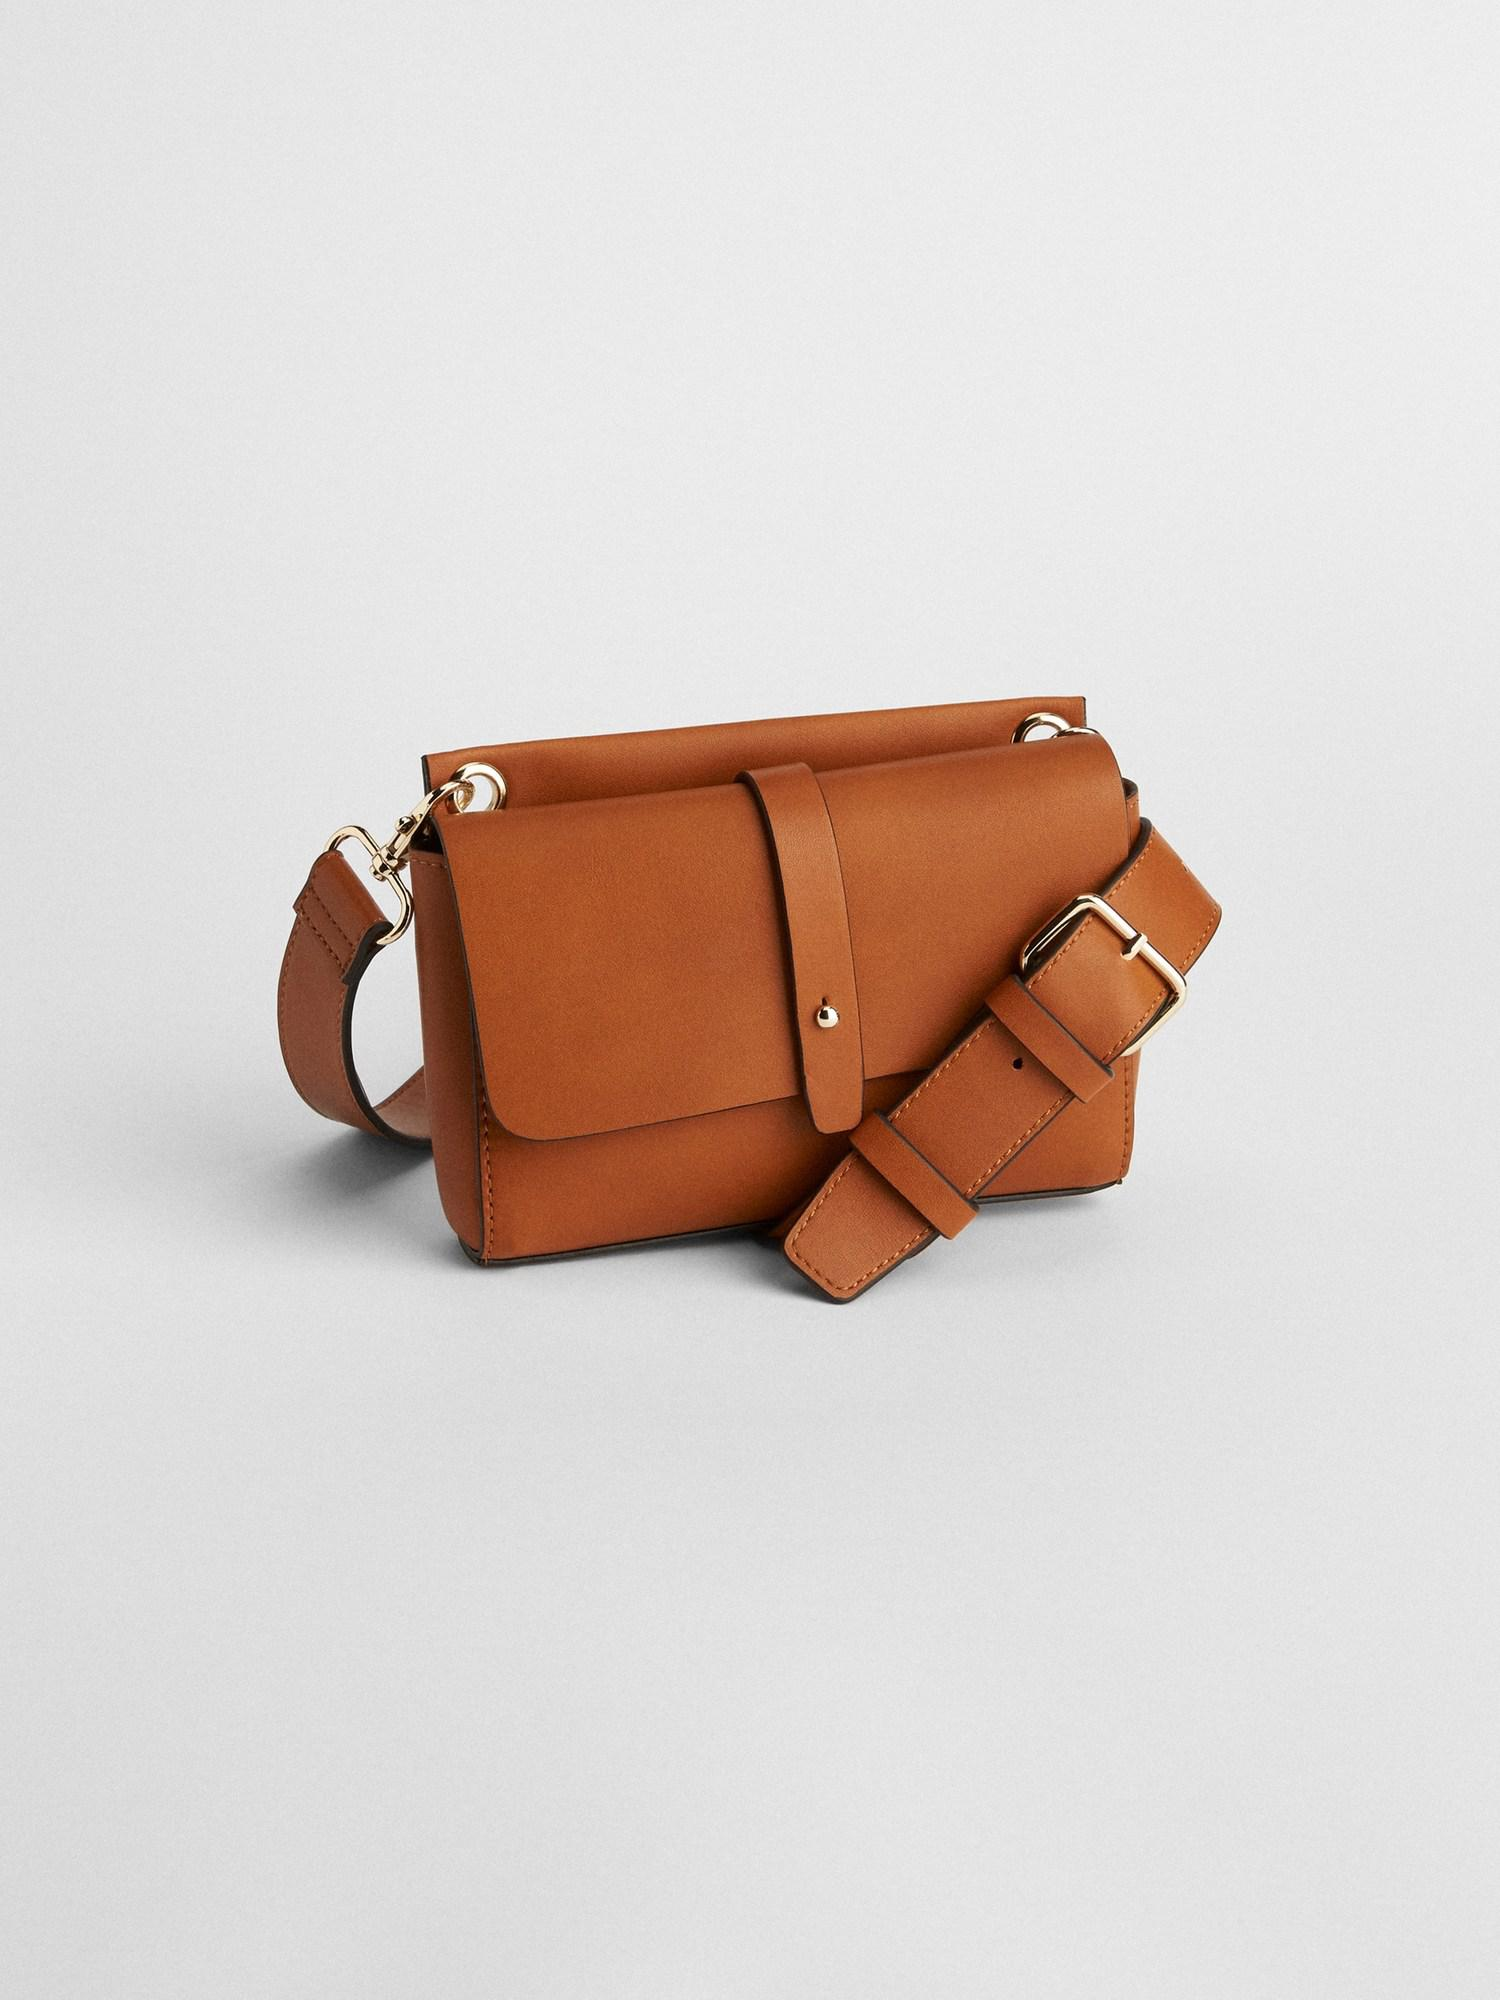 Lyst - Gap Belt Bag in Brown 06b13bd353eb8